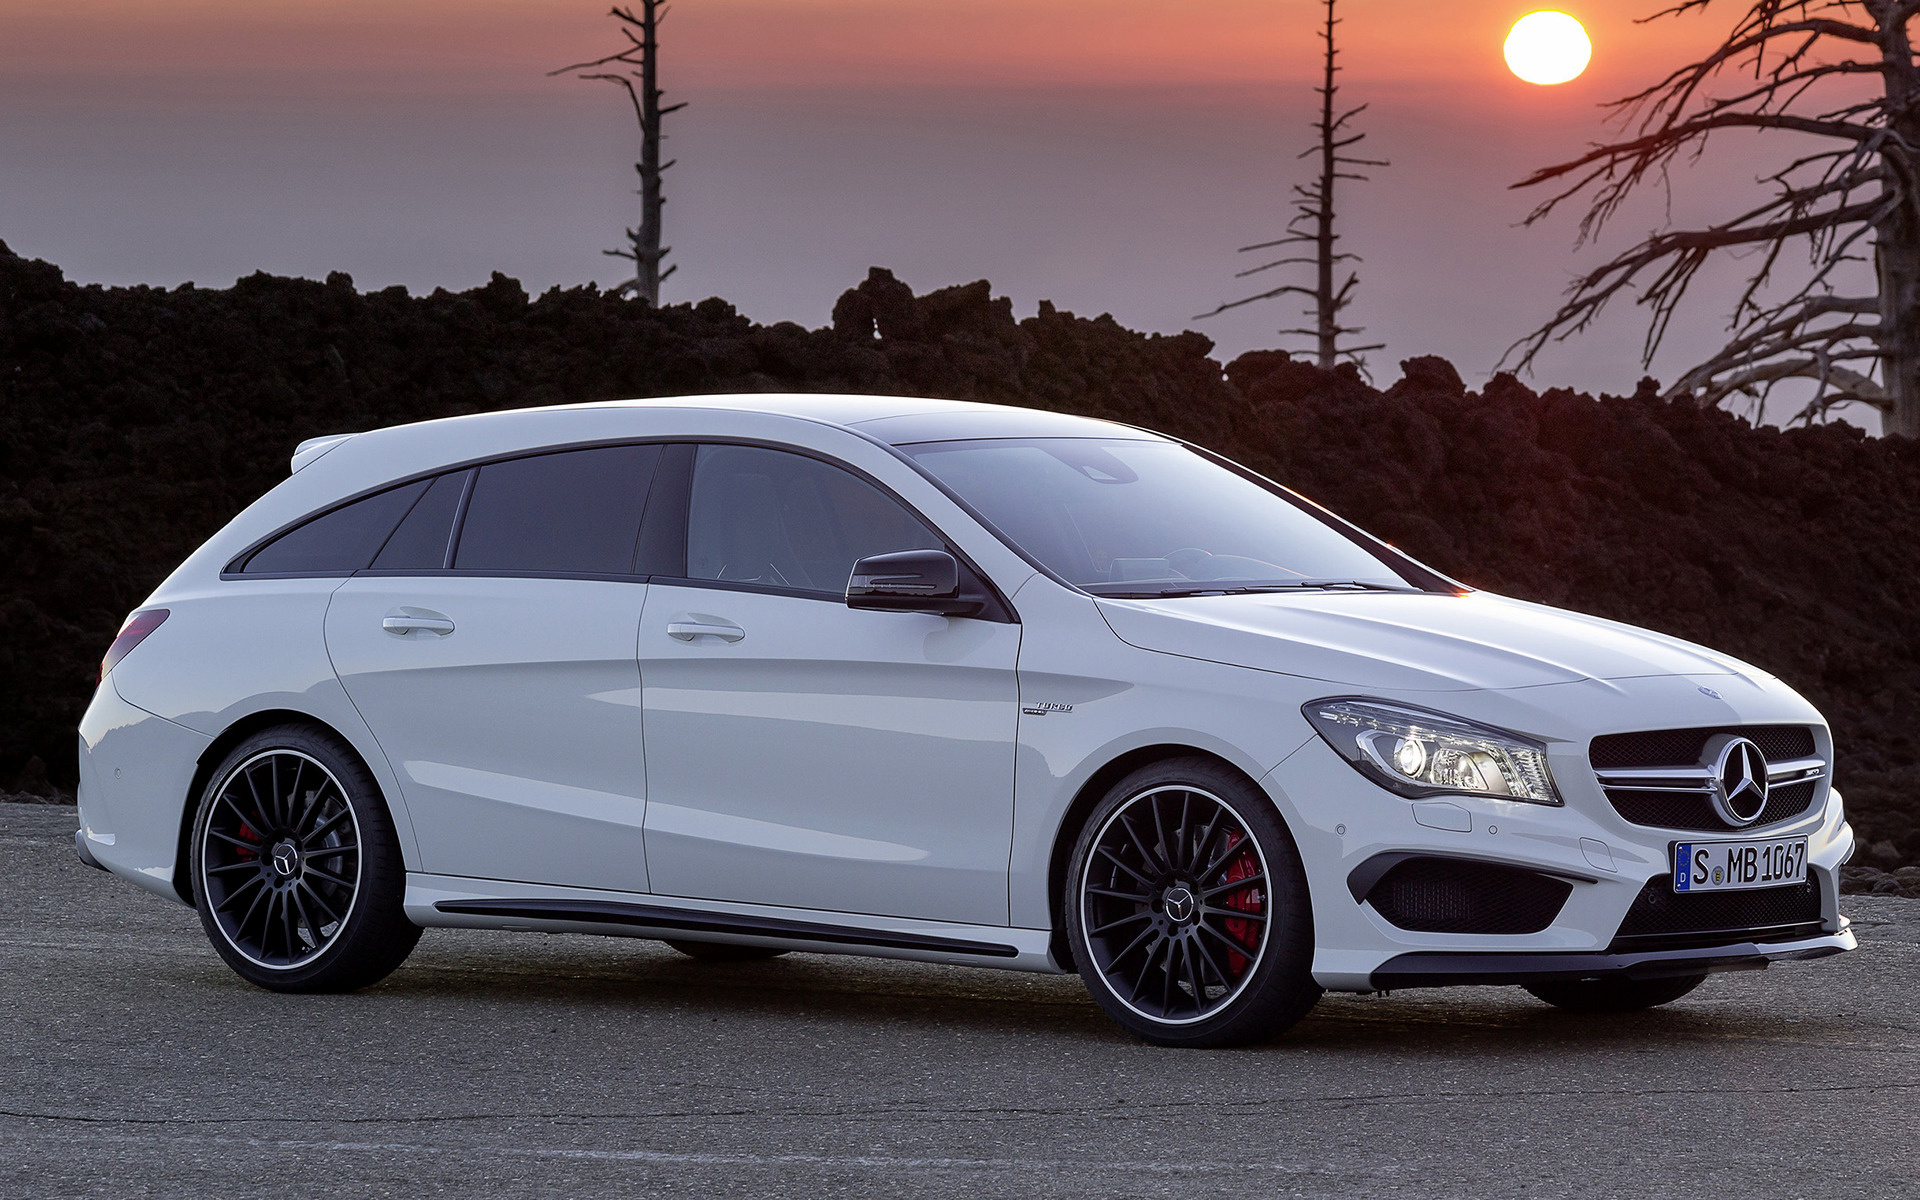 2015 Mercedes AMG CLA 45 Shooting Brake   Wallpapers and HD Images 1920x1200